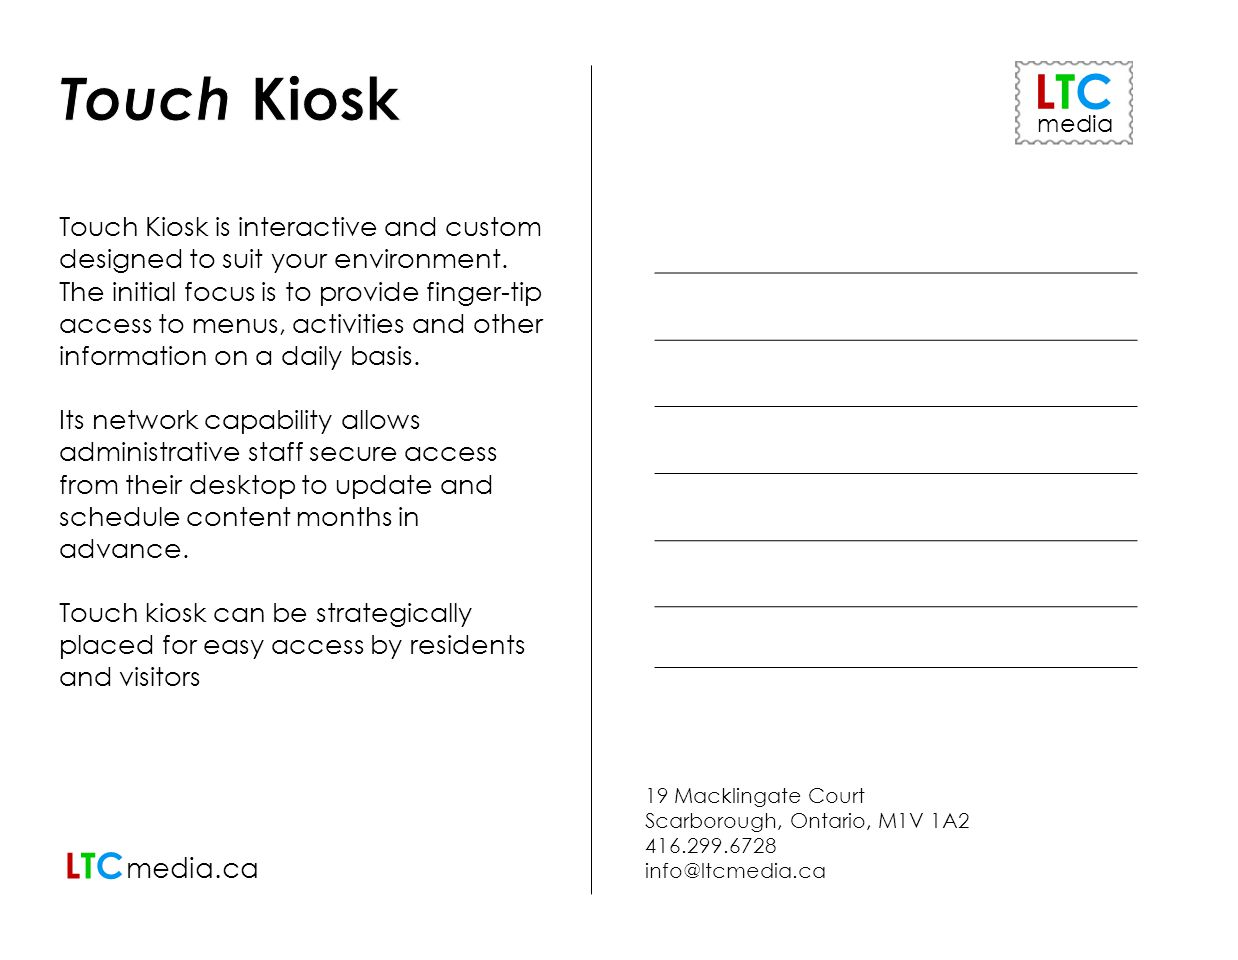 19 Macklingate Court Scarborough, Ontario, M1V 1A2 416.299.6728 info@ltcmedia.ca LTCLTC media.ca ` Touch Kiosk is interactive and custom designed to suit your environment.